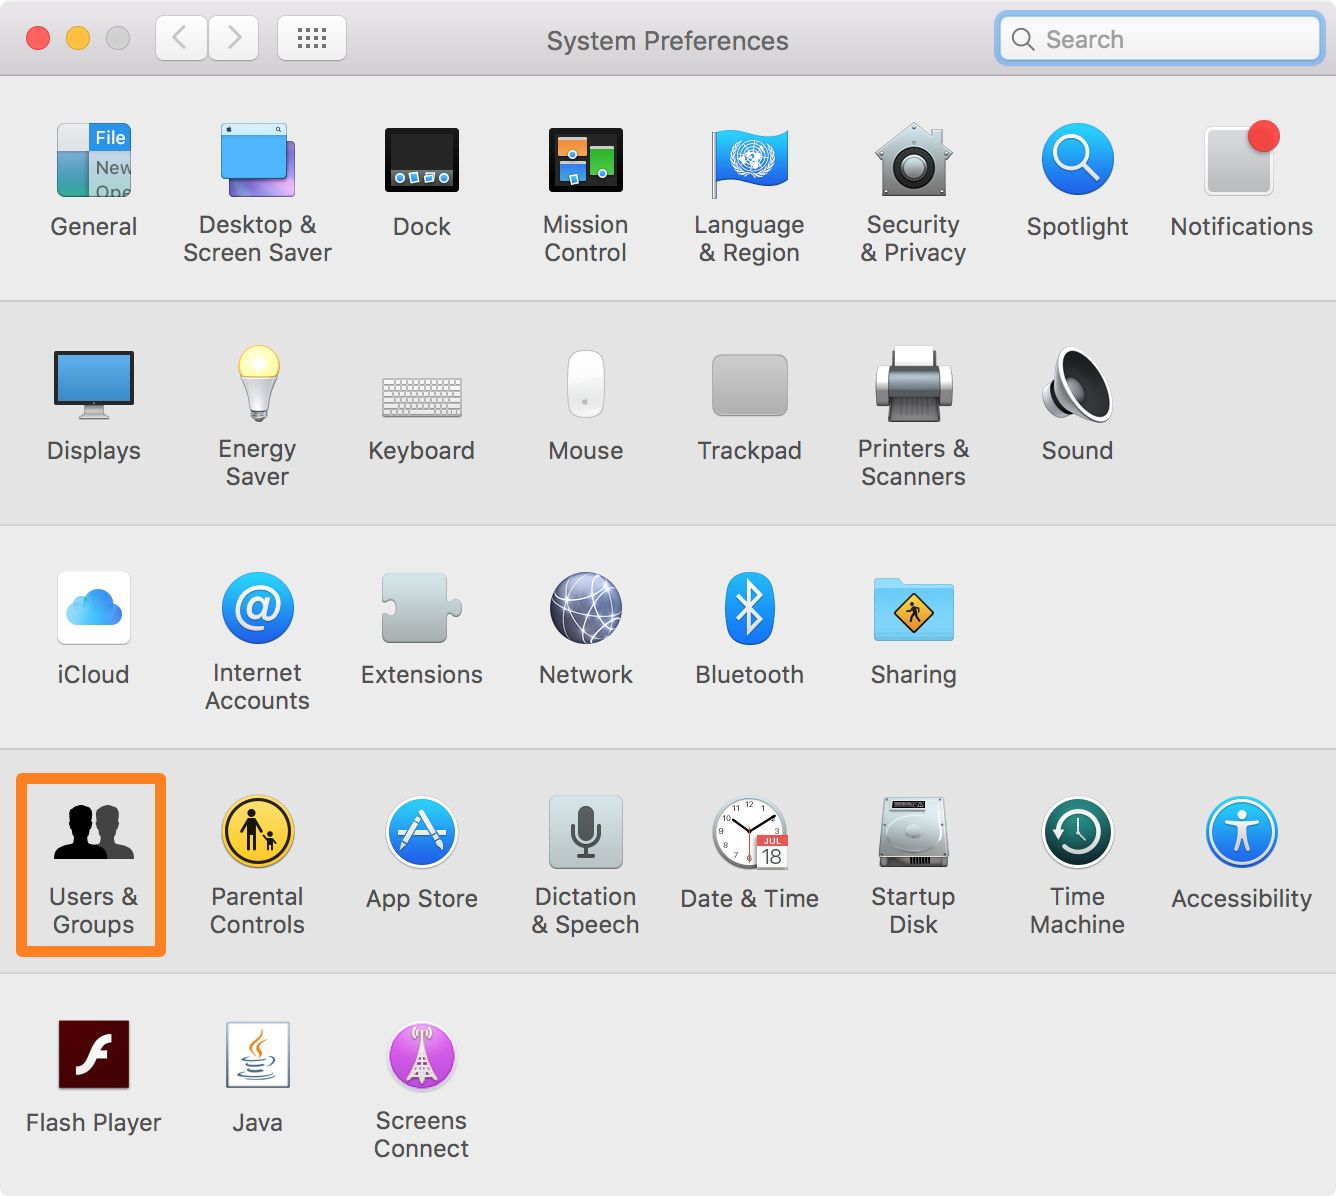 enable parental controls on Mac - Users and Groups Mac System Preferences